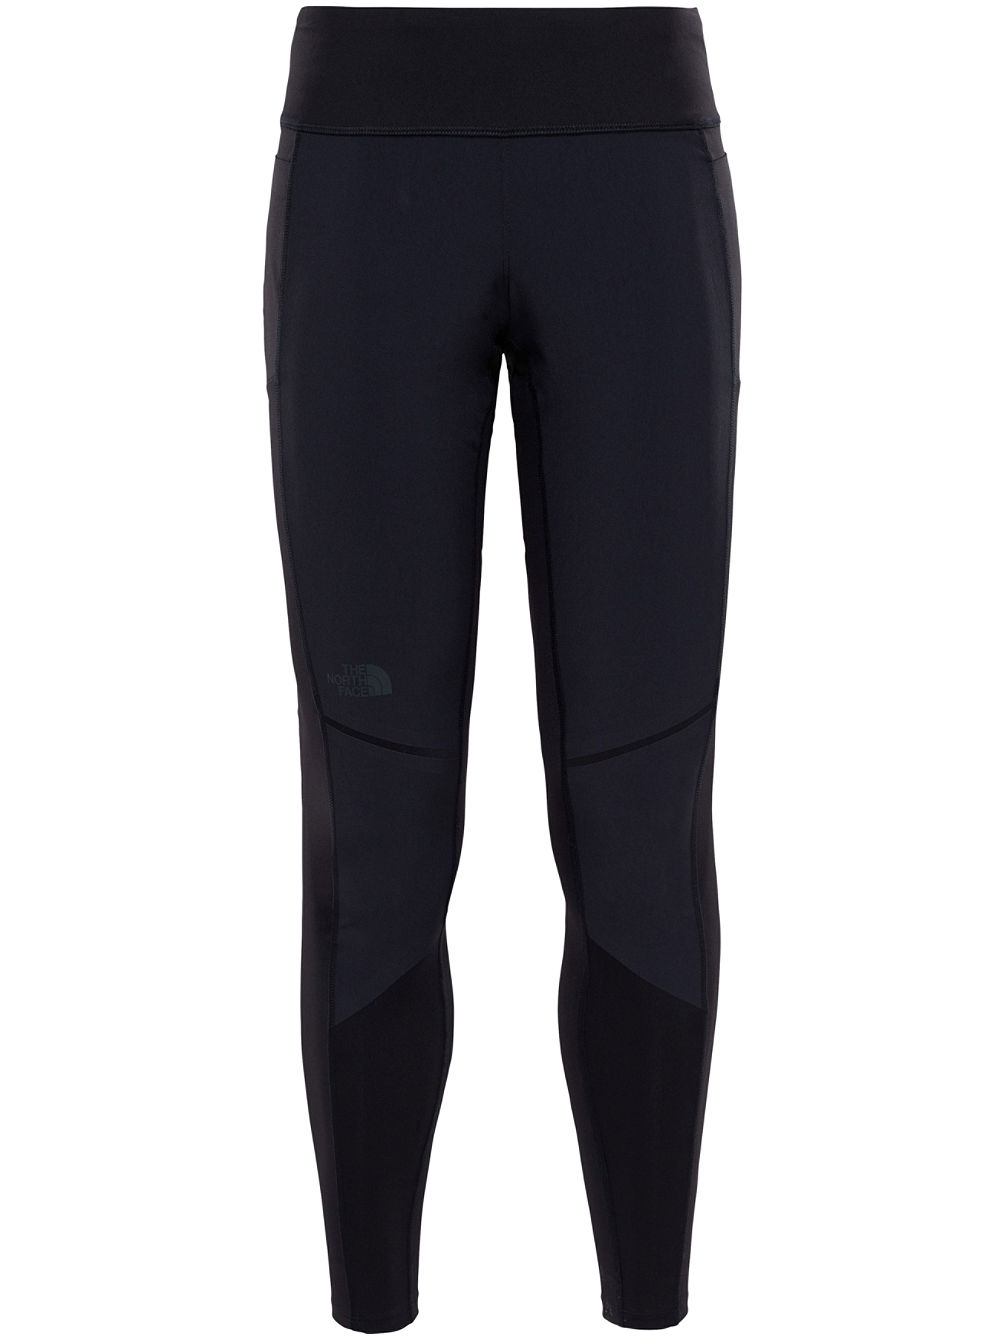 Progressor Hybrid Tight Tech Pants